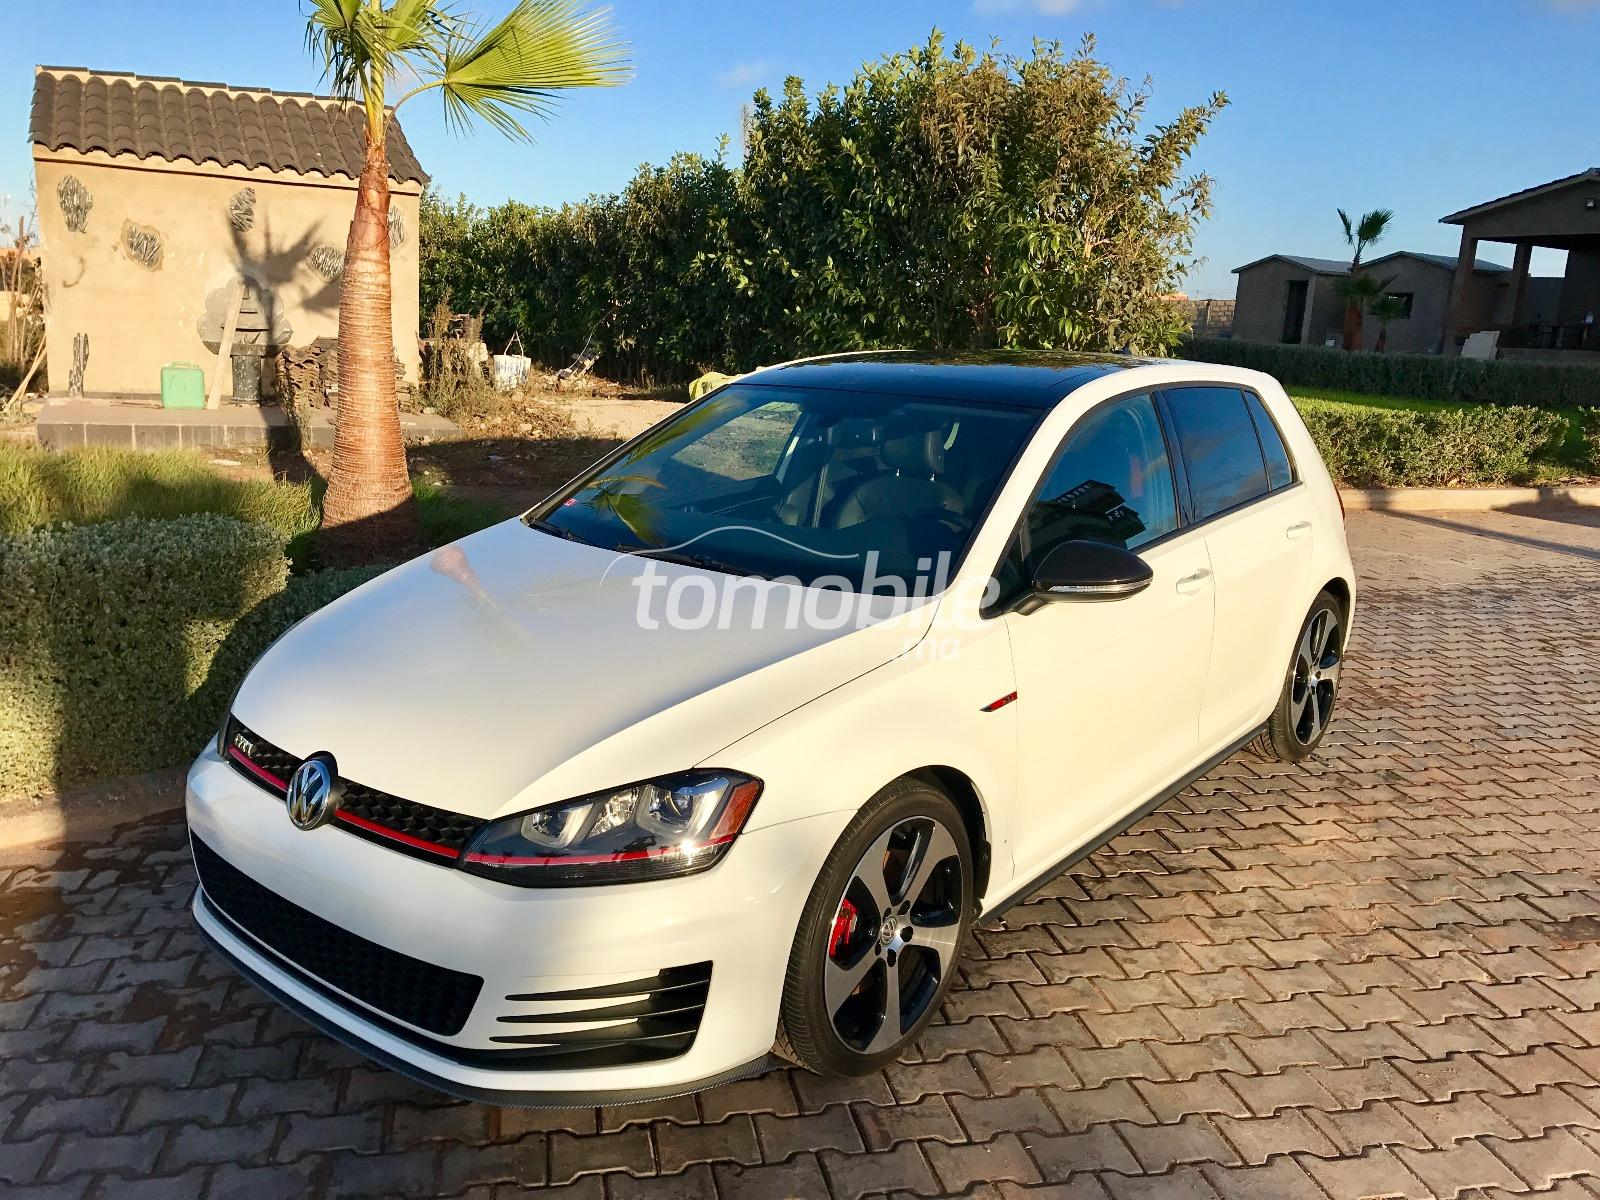 volkswagen golf import neuf essence 2015 occasion 25000km casablanca 54804. Black Bedroom Furniture Sets. Home Design Ideas